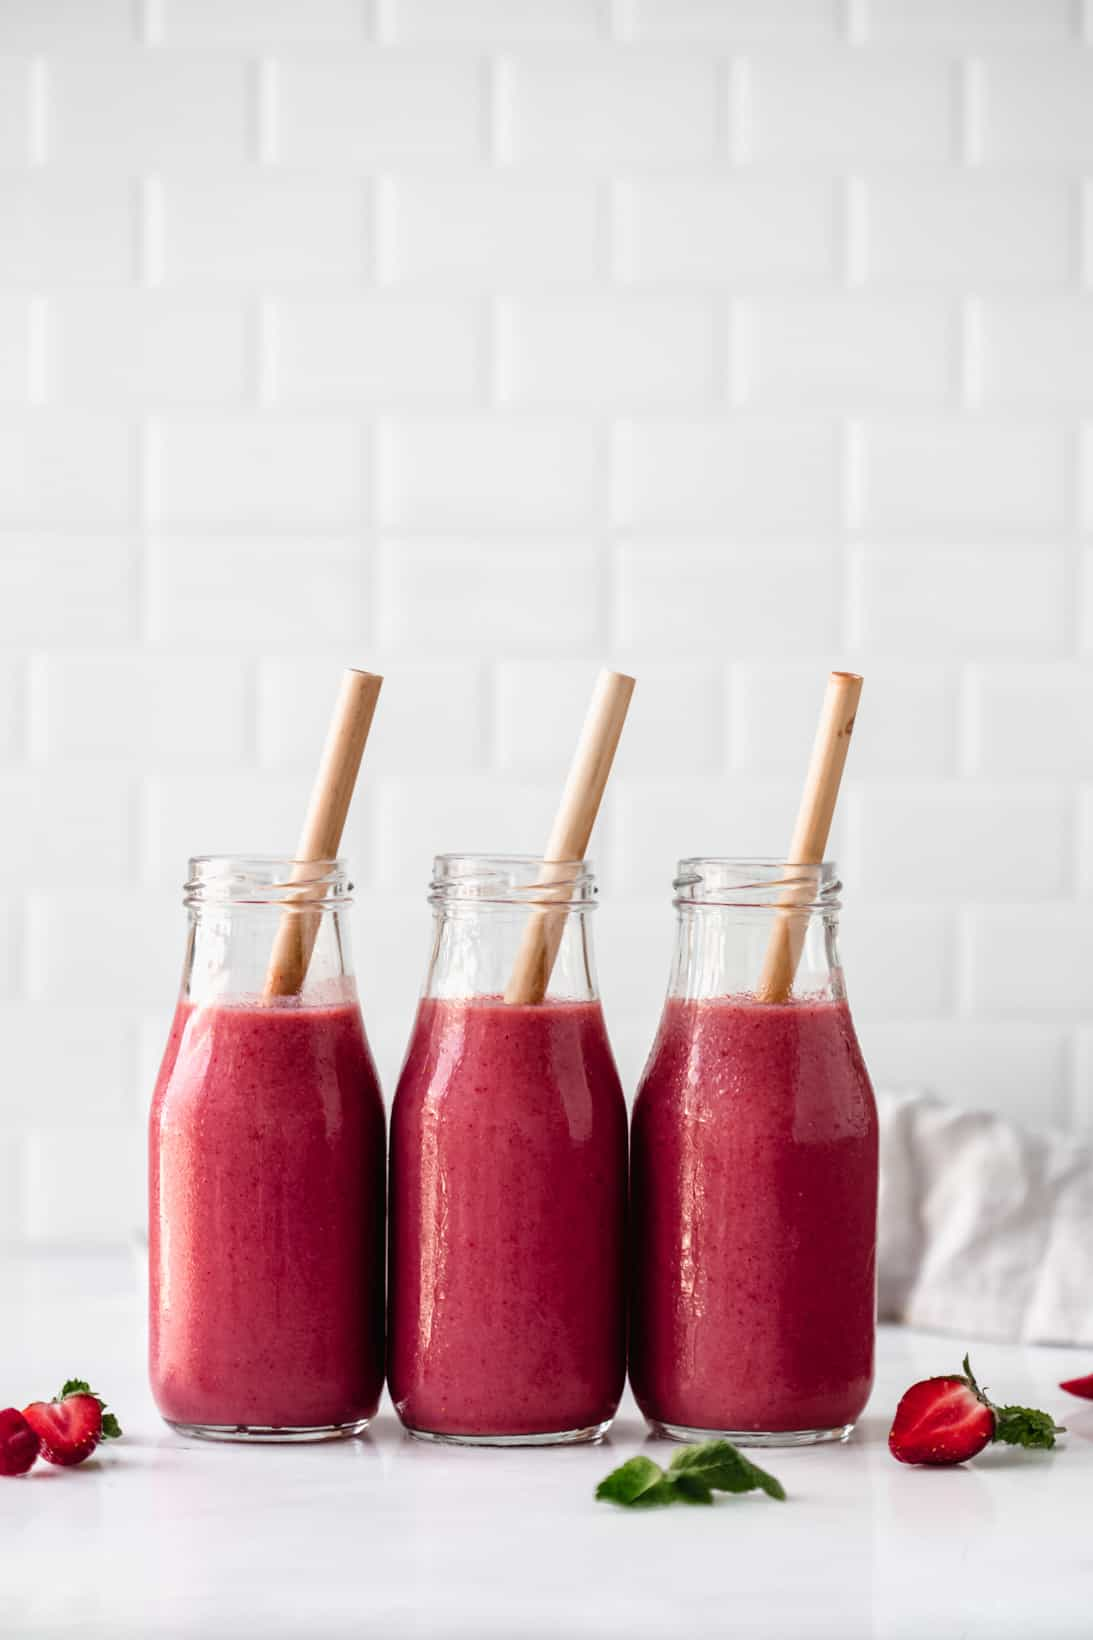 three bottles of berry smoothie with bamboo straws in them